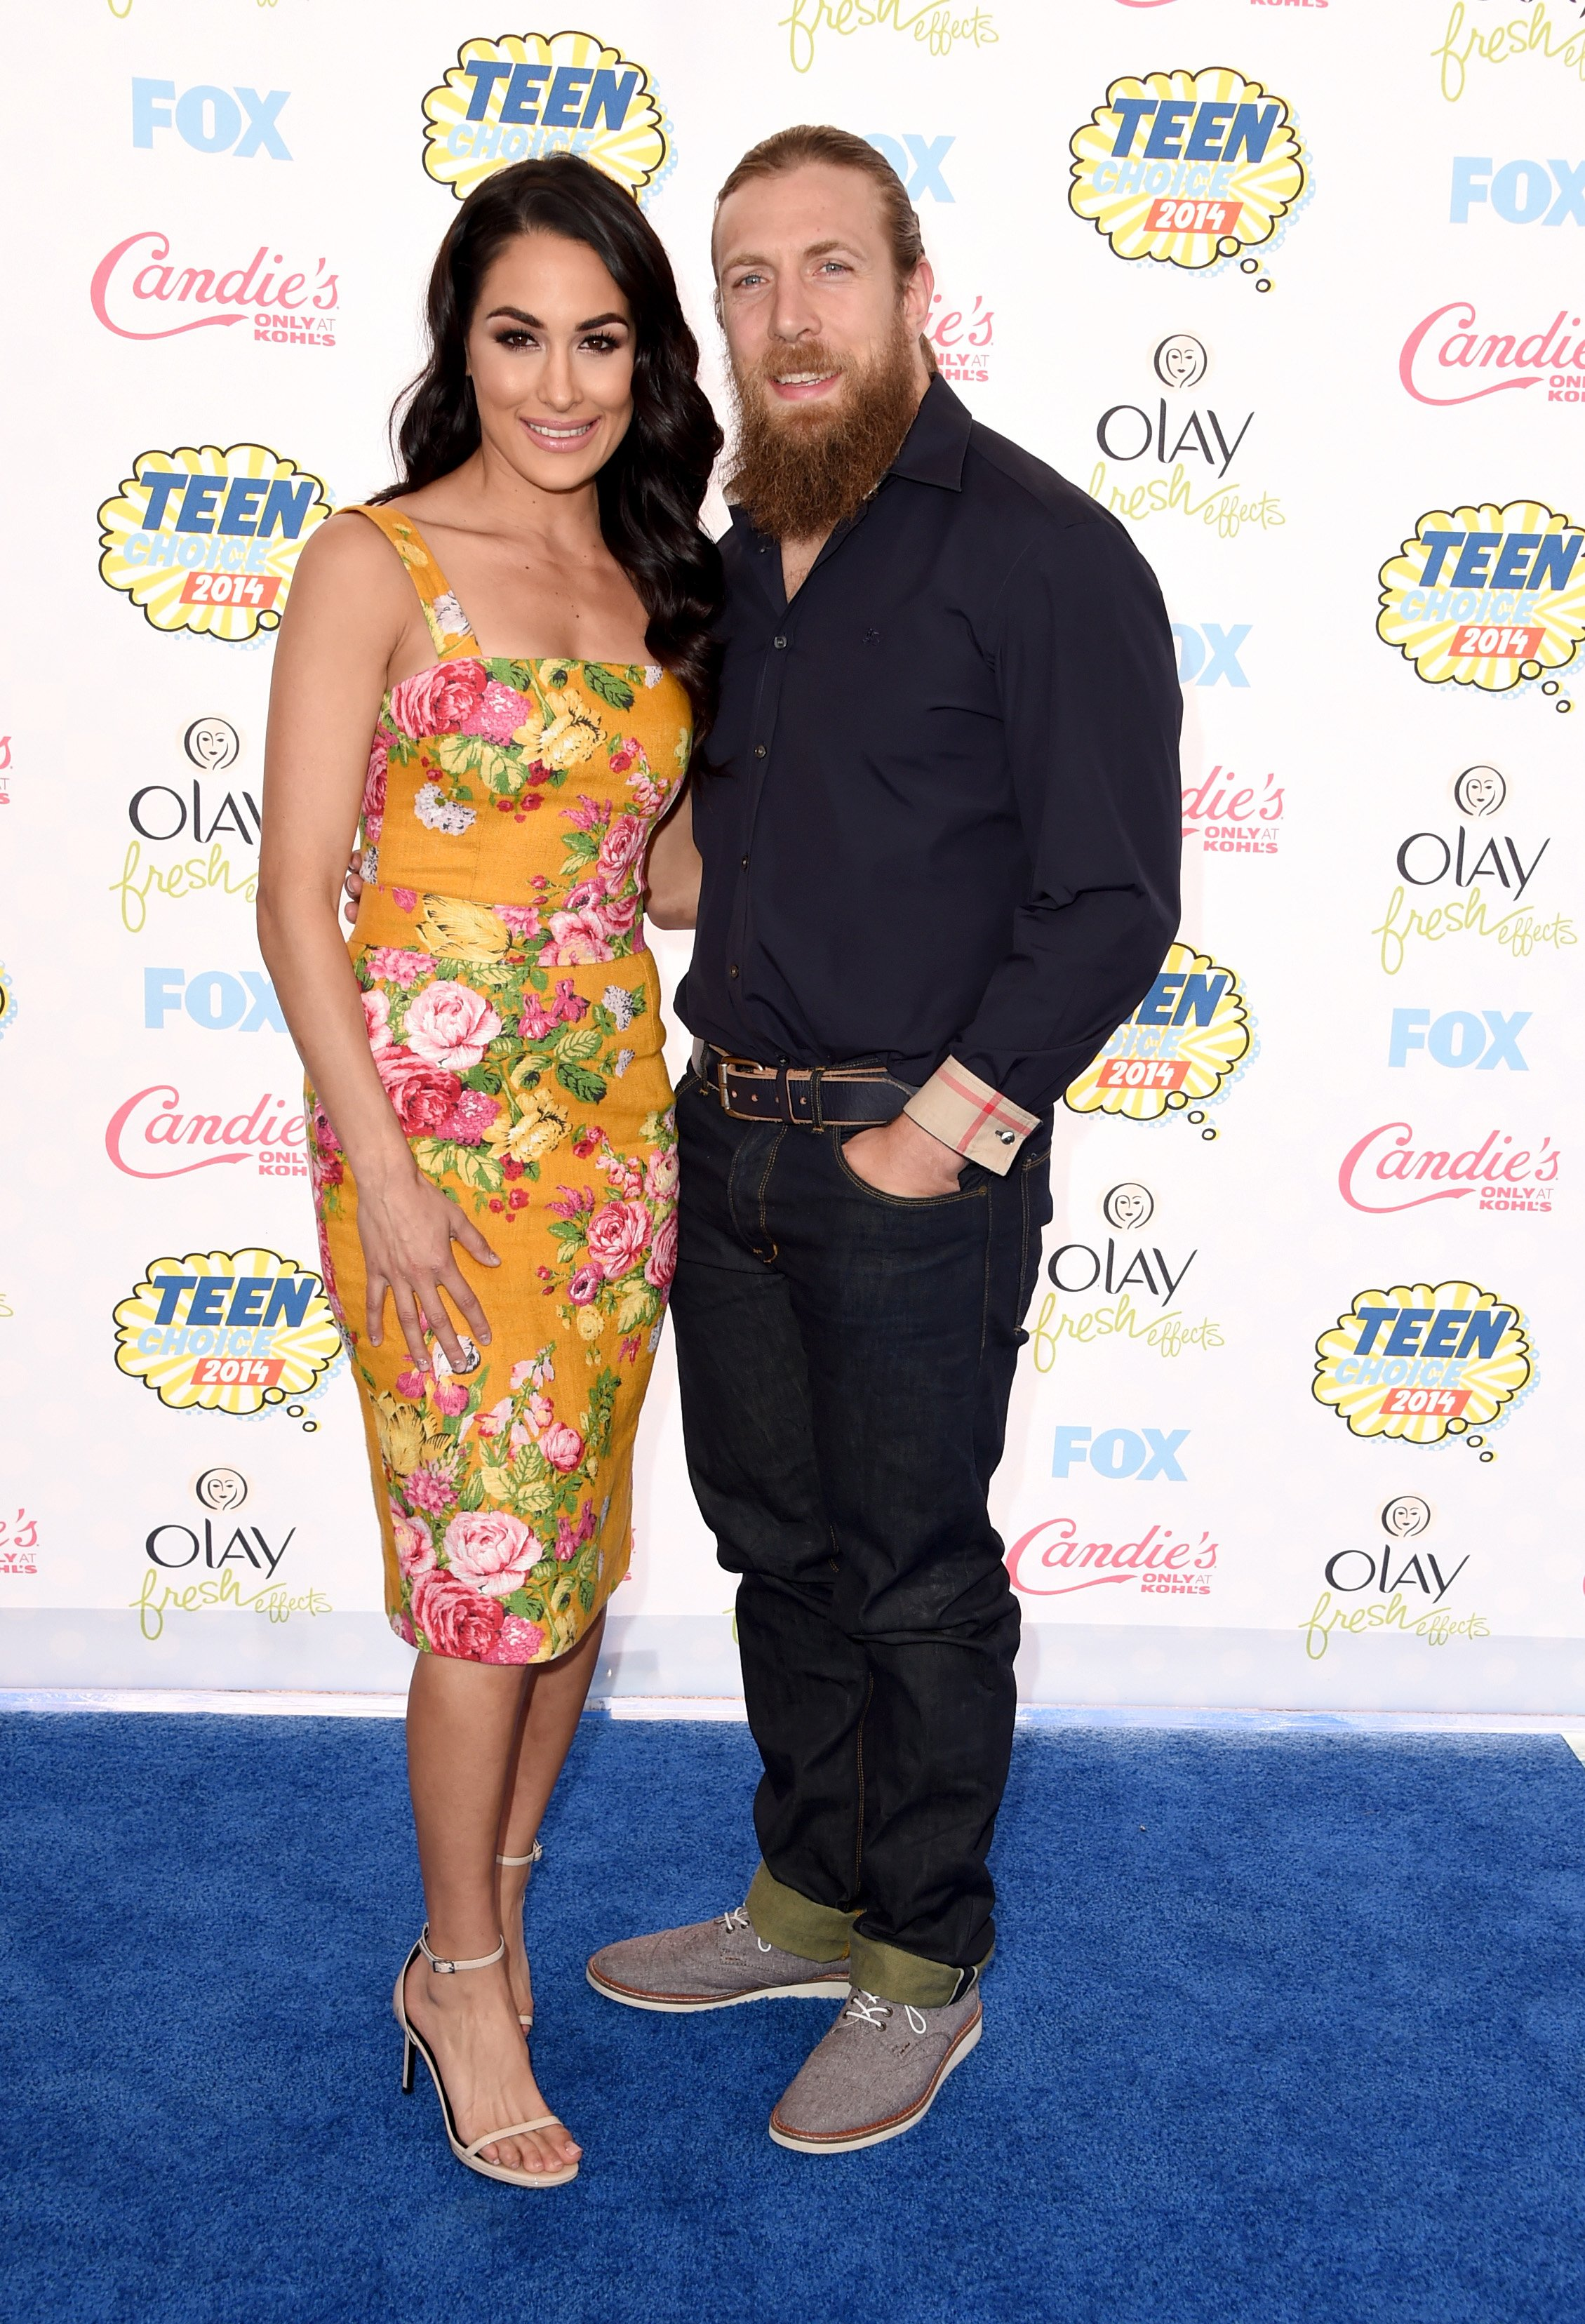 Brie Bella and WWE Superstar Daniel Bryan attend FOX's 2014 Teen Choice Awards on August 10, 2014, in Los Angeles, California. | Source: Getty Images.